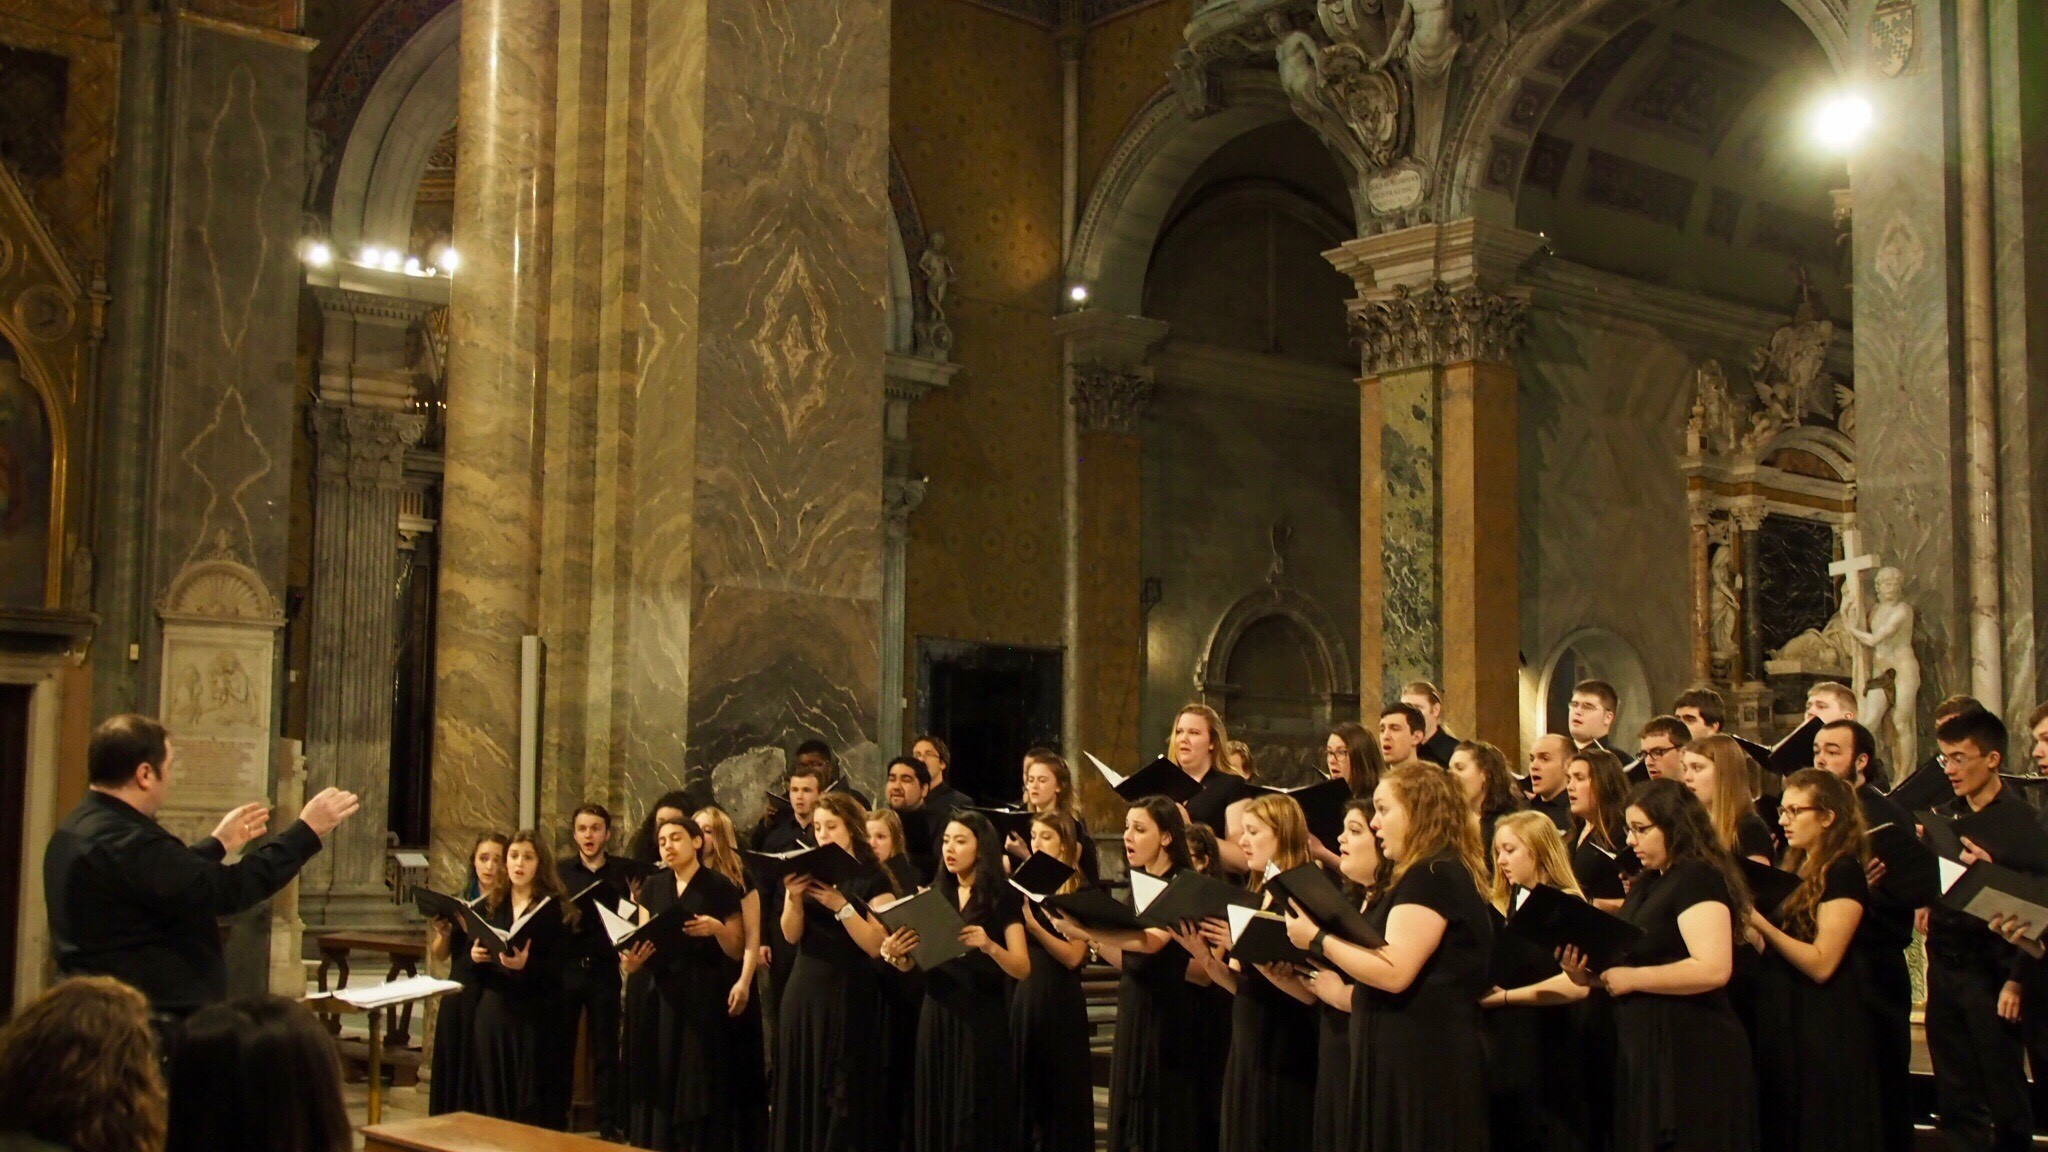 Concert of Puccini's sacred choral music in Willimantic